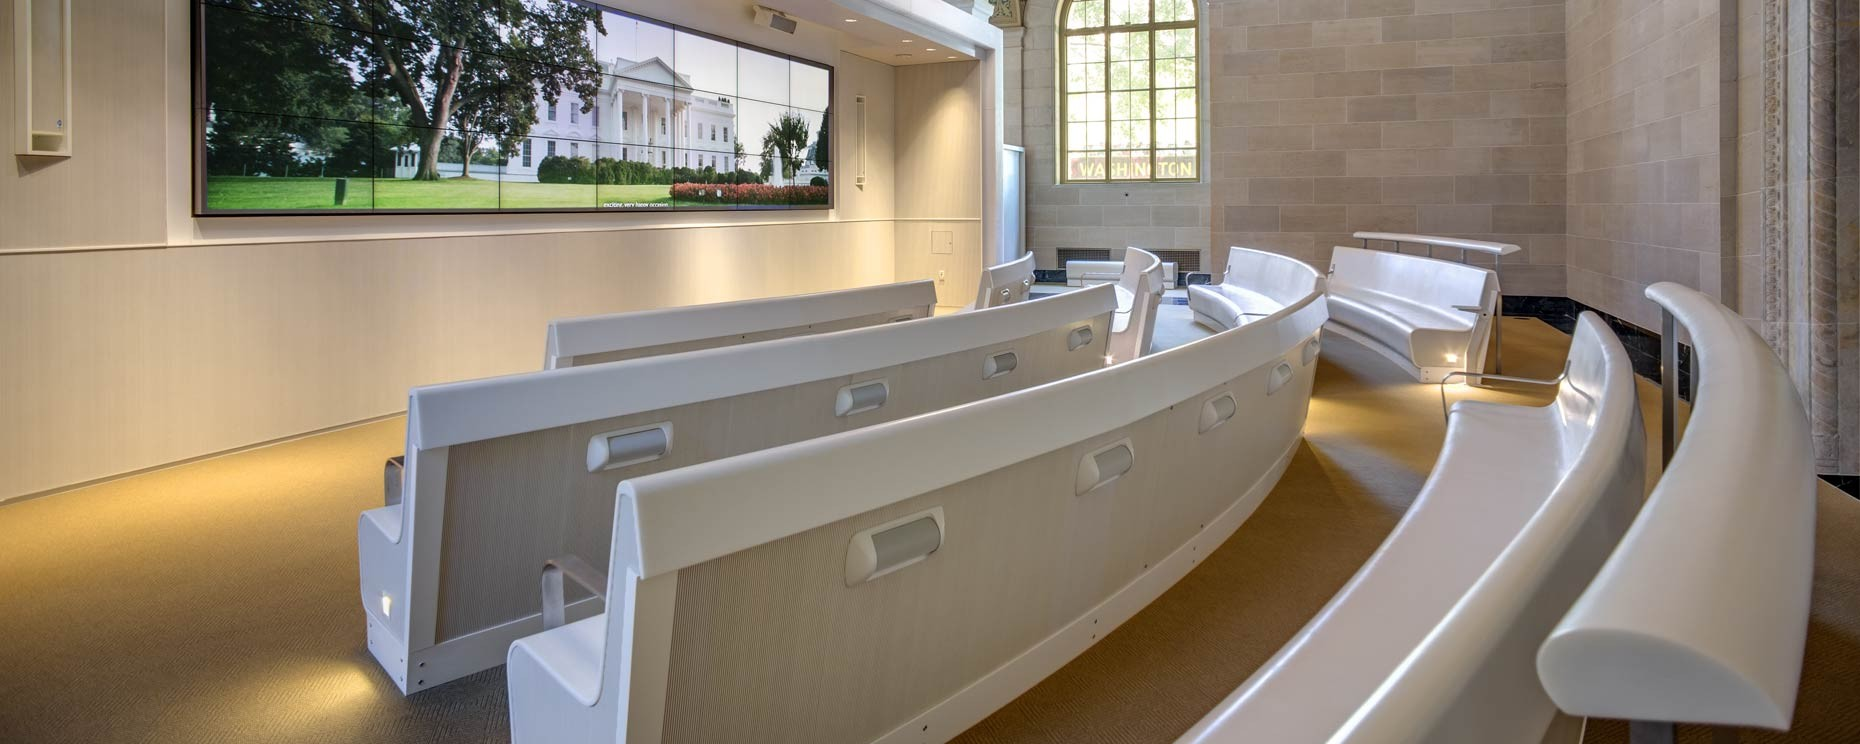 White House Visitors Center, Washington D.C.. Thermoformed curved benches